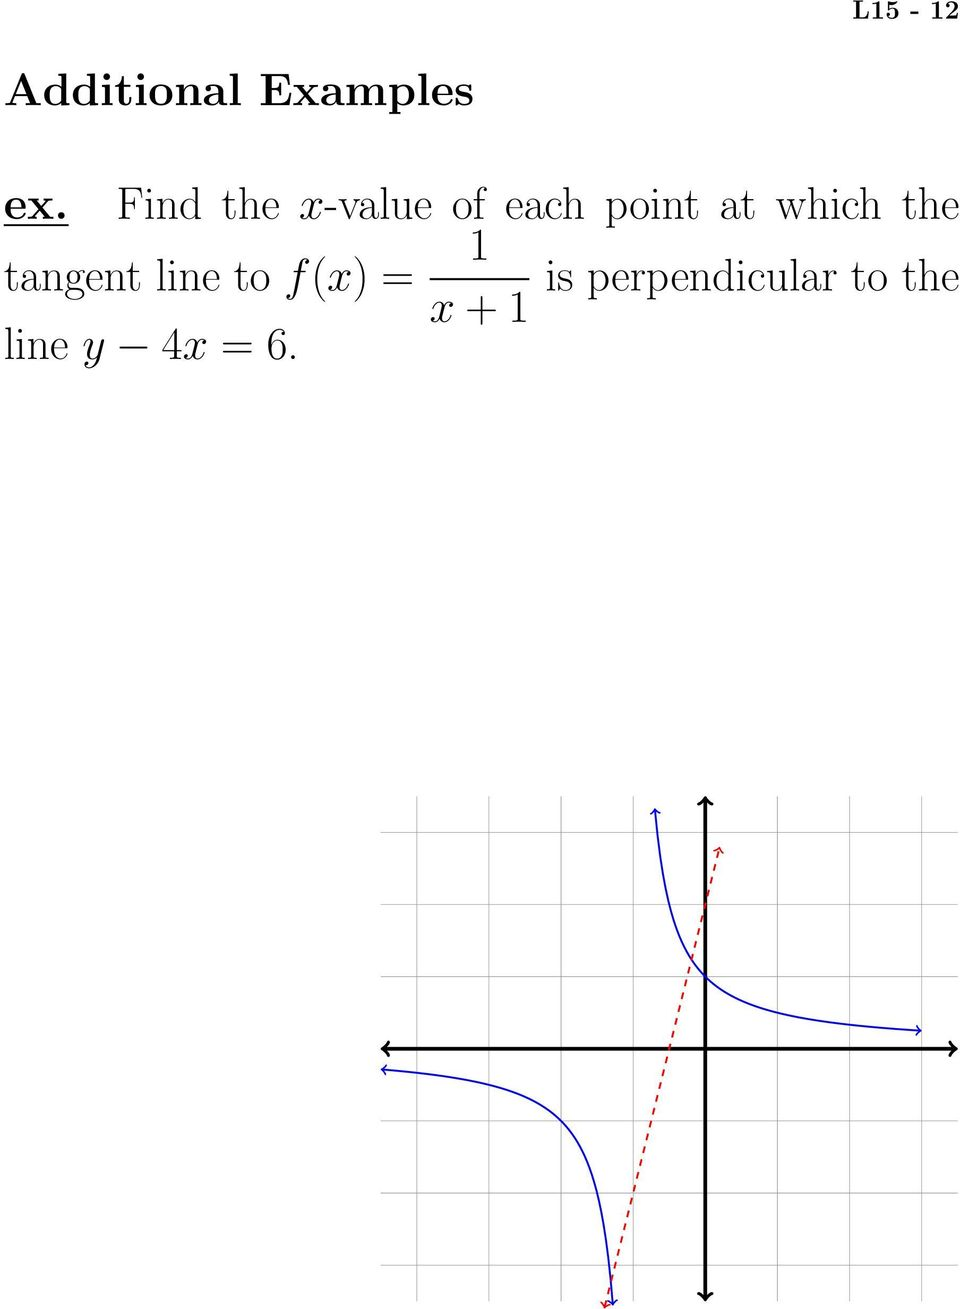 which the tangent line to f(x) = 1